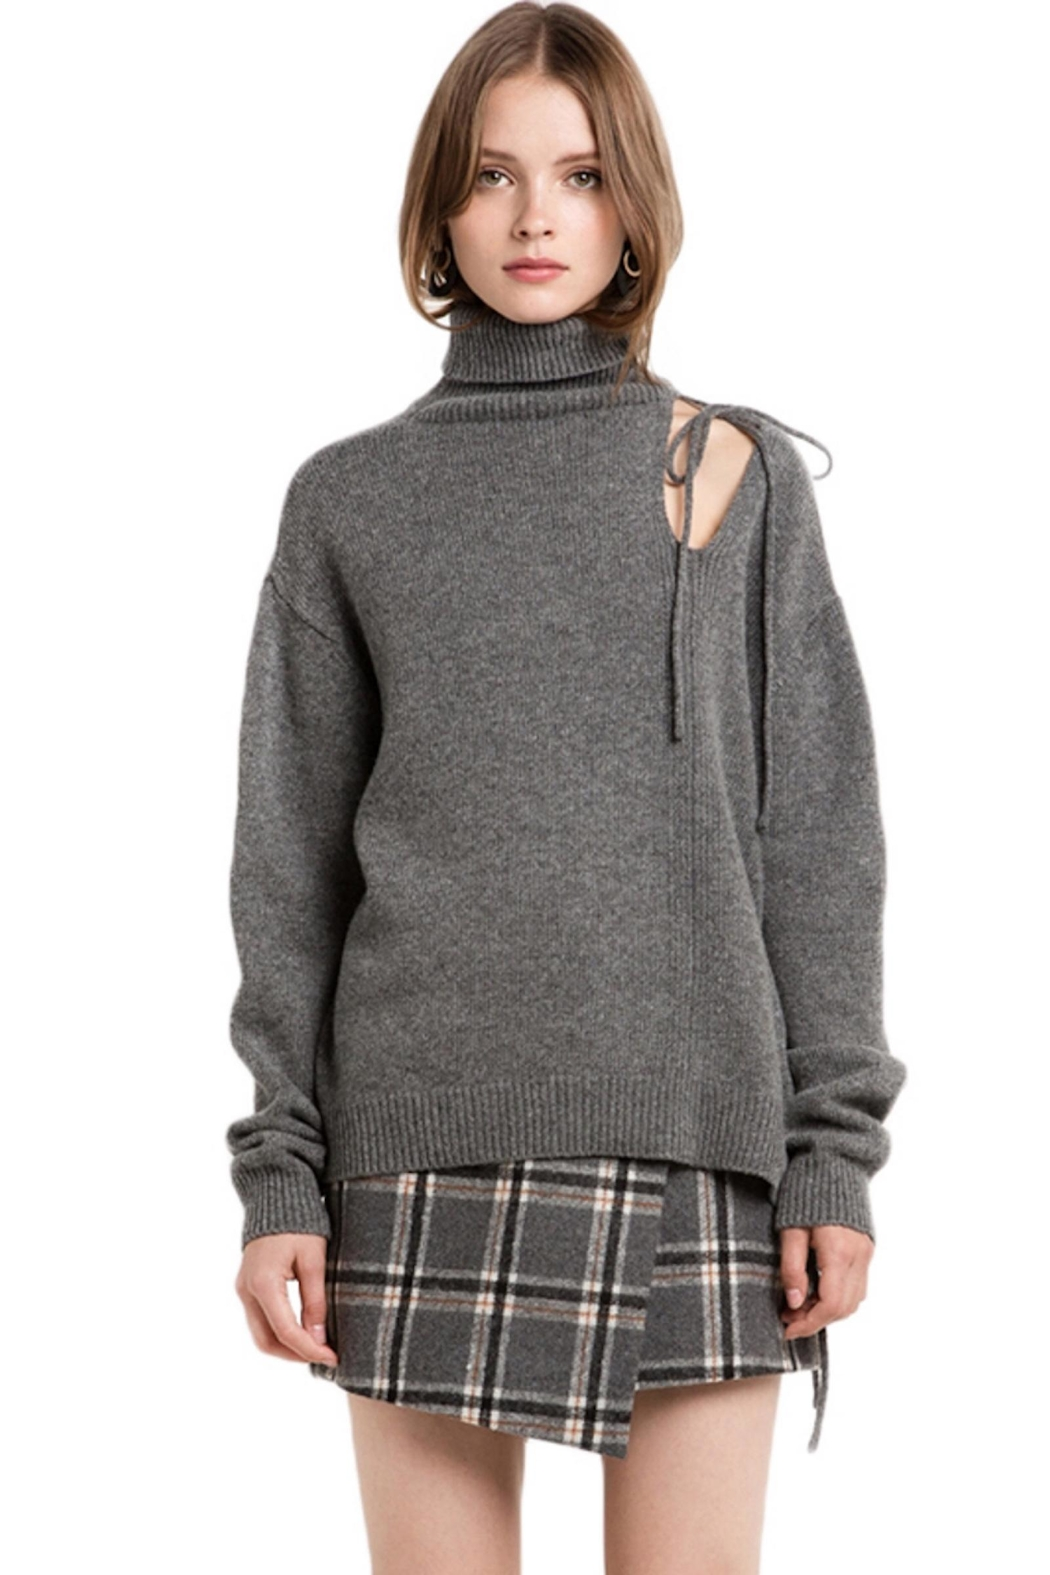 People Outfitter Grey Cut Out Turtleneck Sweater - Main Image